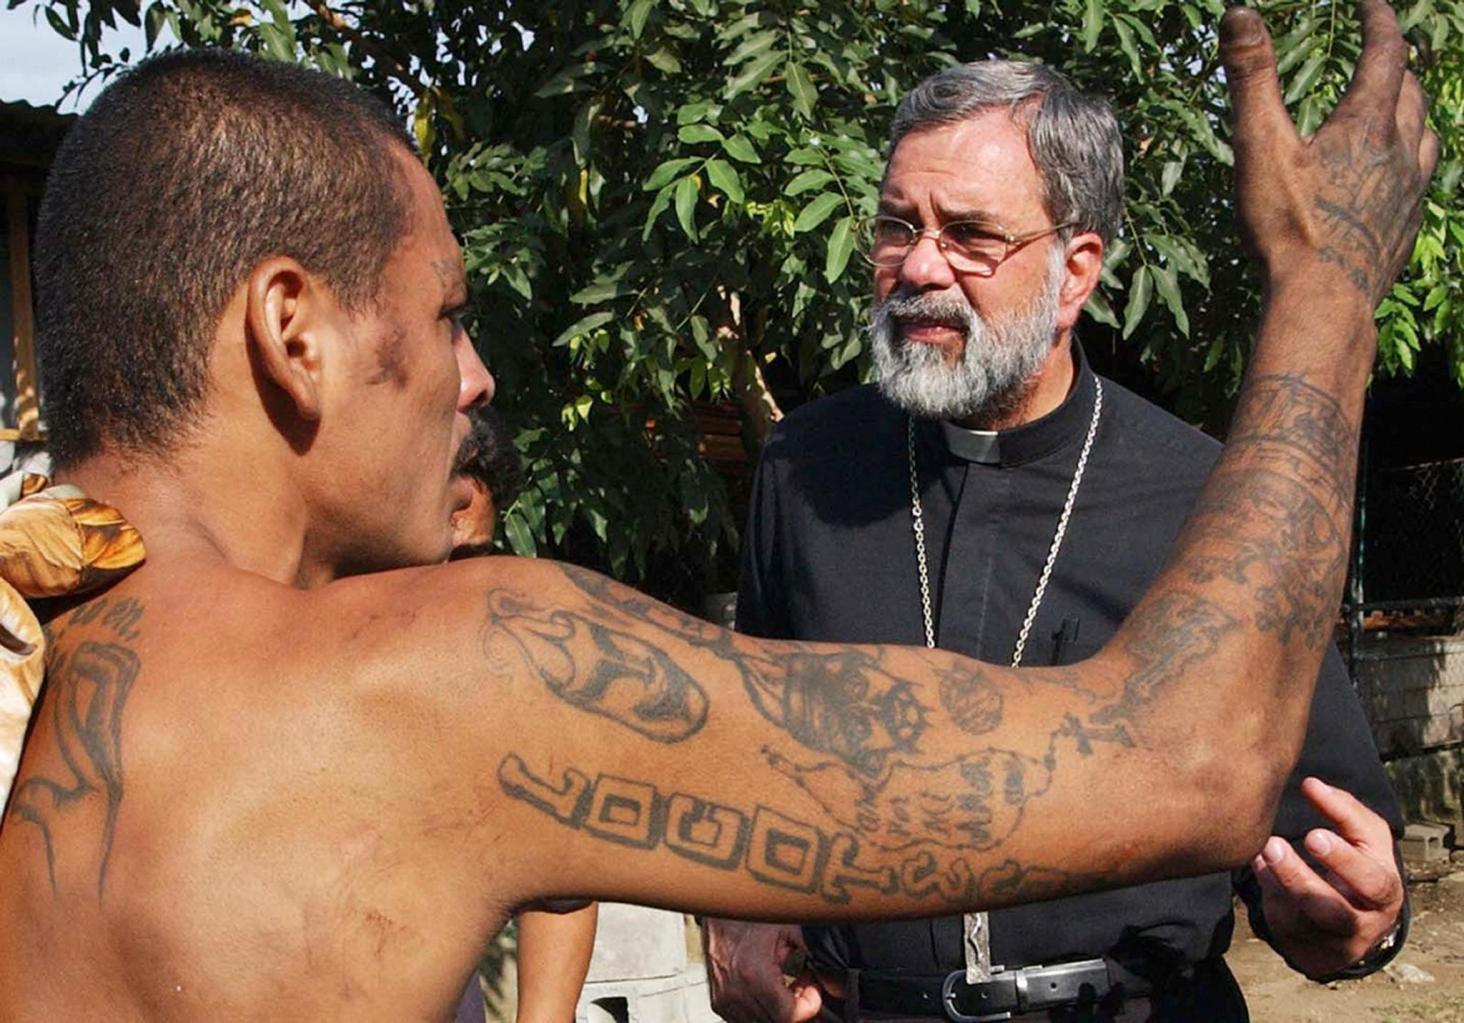 """SAN PEDRO SULA, HONDURAS: Romulo Emiliani (R), Archbishop of San Pedro Sula, speaks with a member of the Salvatrucha gang in San Pedro Sula, Honduras, 26 March 2005. Violence from street gangs, known in the region as """"maras,"""" are considered the most pressing security issues in large cities in El Salvador, Guatemala and Honduras - countries which will take part in the Anti-Maras Meeting on April 1st, in Tegucigalpa. Many of the Central American gangs have members living in the United States, and during his recent visit to Guatemala, US Defense Secretary Donald Rumsfeld announced a possible increase in US aid for the fight against terrorism, drug trafficking and gang violence in the region. AFP PHOTO/Gerardo Mazariegos (Photo credit should read GERARDO MAZARIEGOS/AFP/Getty Images)"""